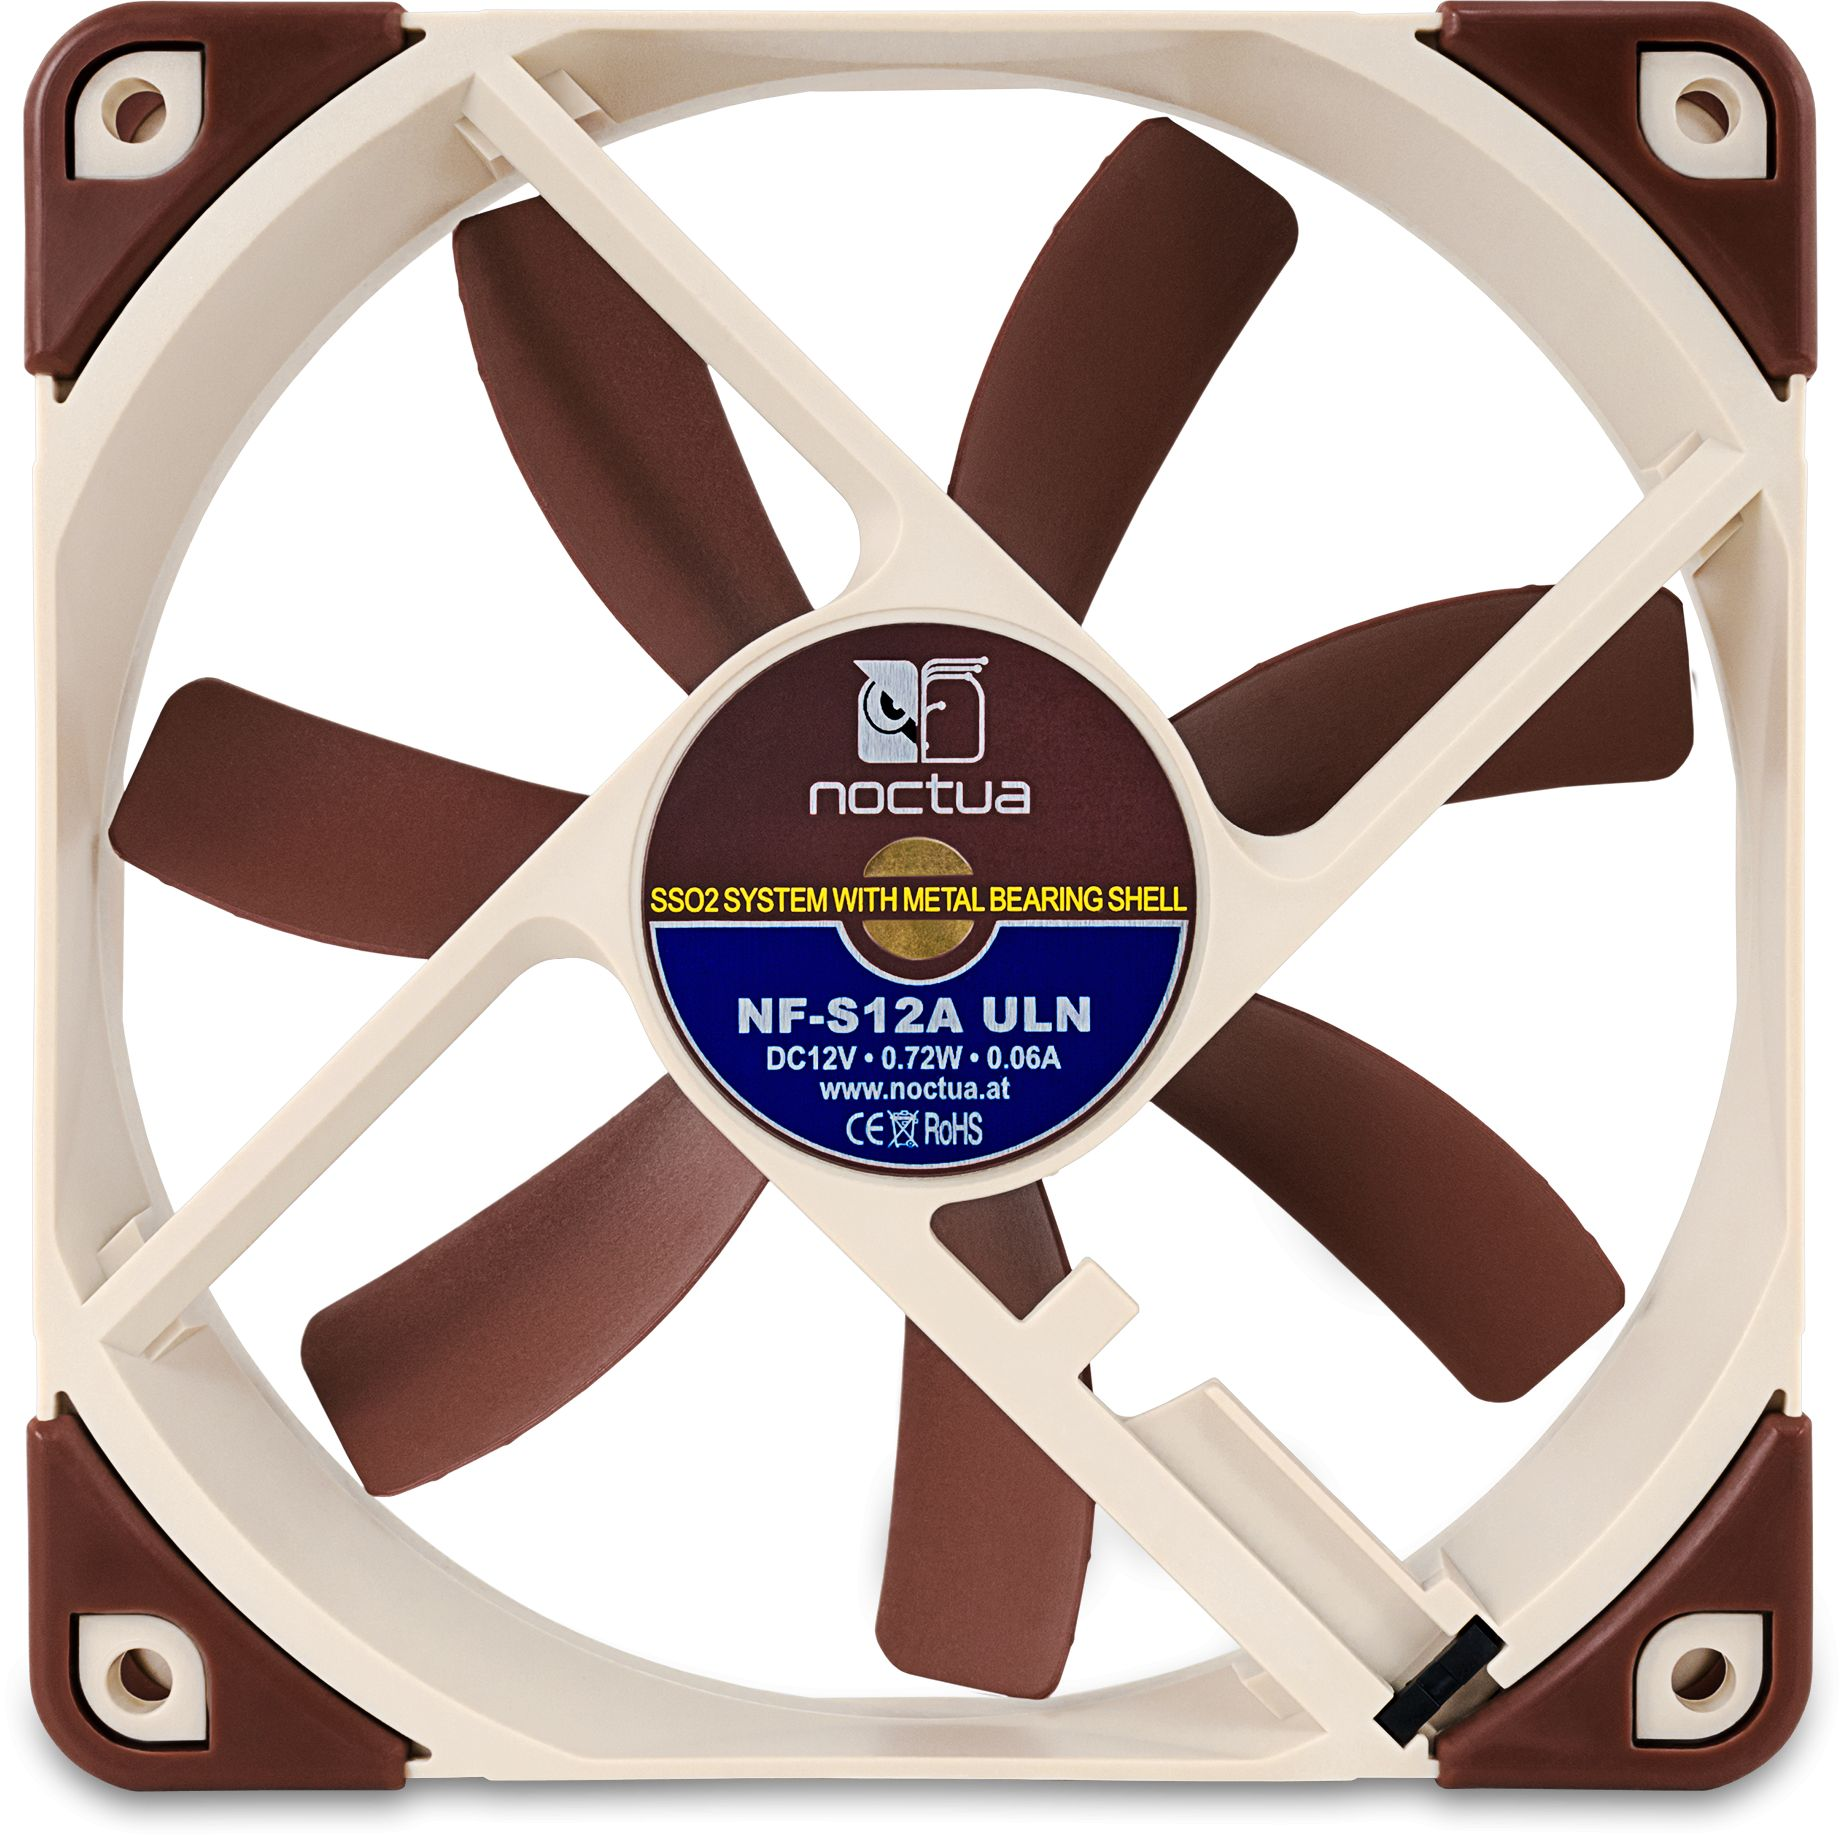 Nf S12a Uln 12v 800rpm 120mm Ultra Low Noise Cooling Fan